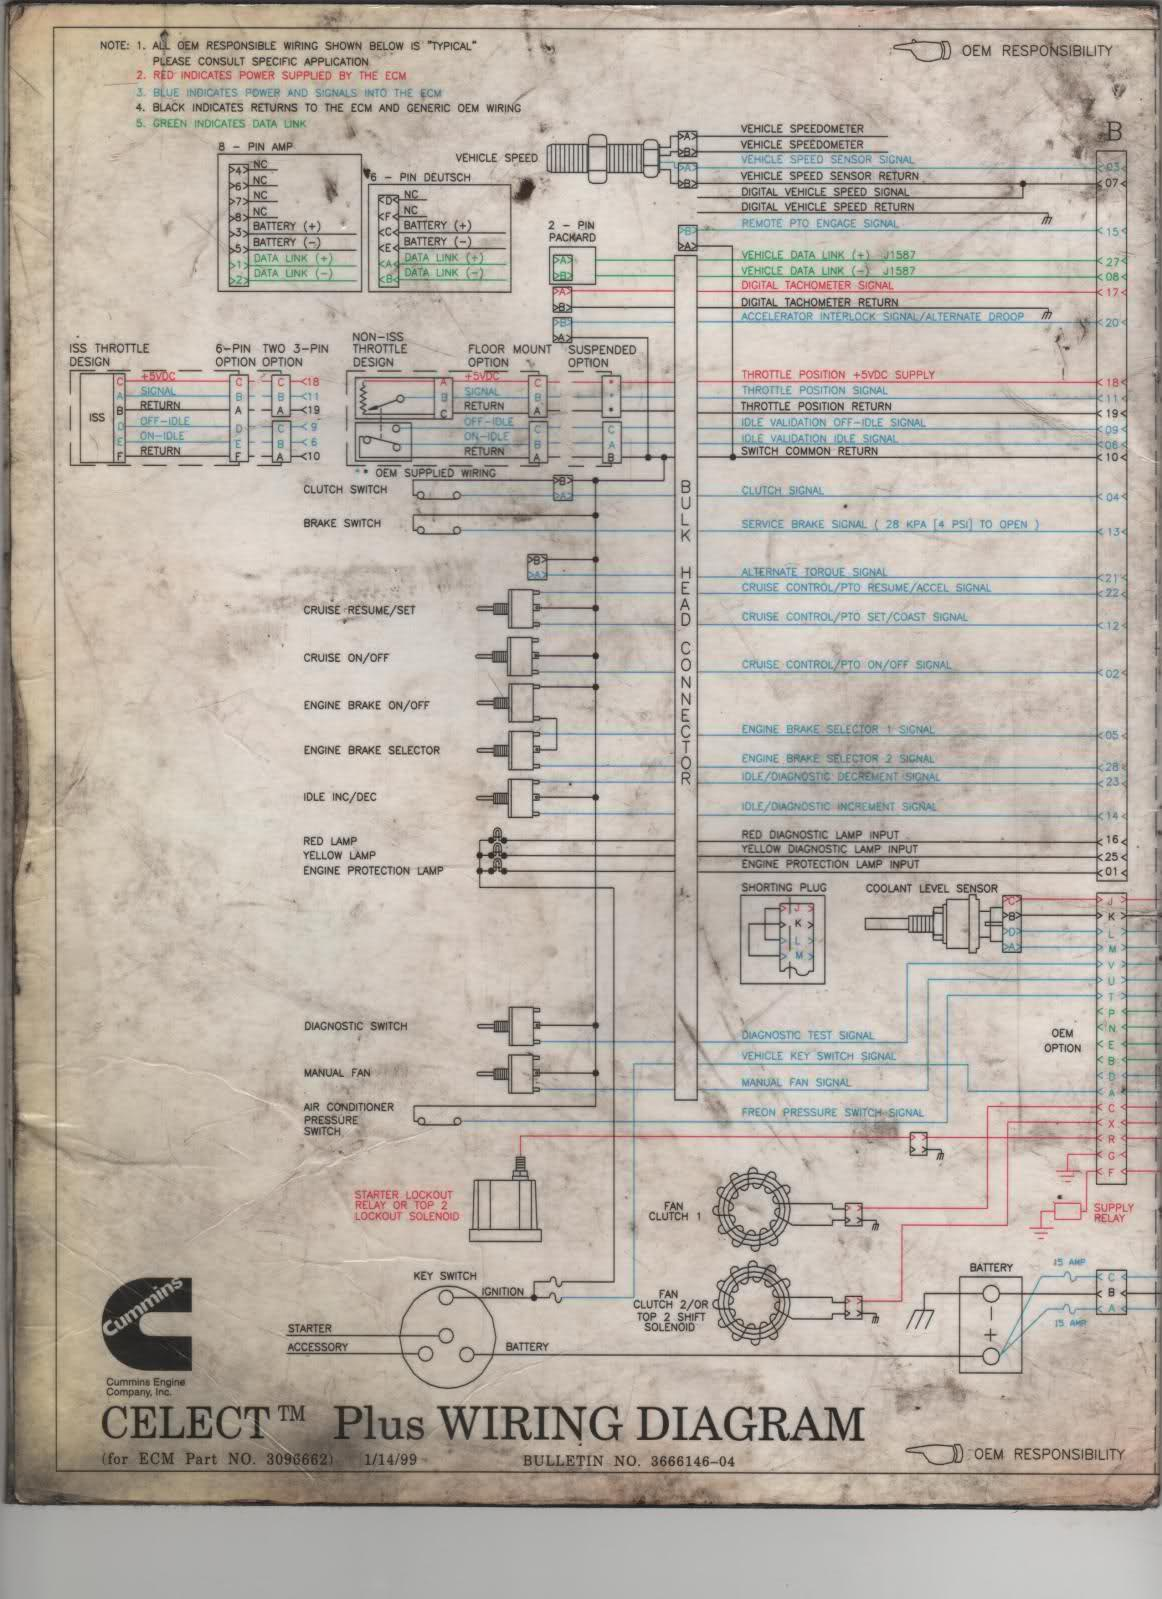 Buddy Need Your Help Again I Cummins Celect Plus Ecm 1950 Packard Wiring Diagram Edited By On 5 11 2010 At 1033 Pm Est